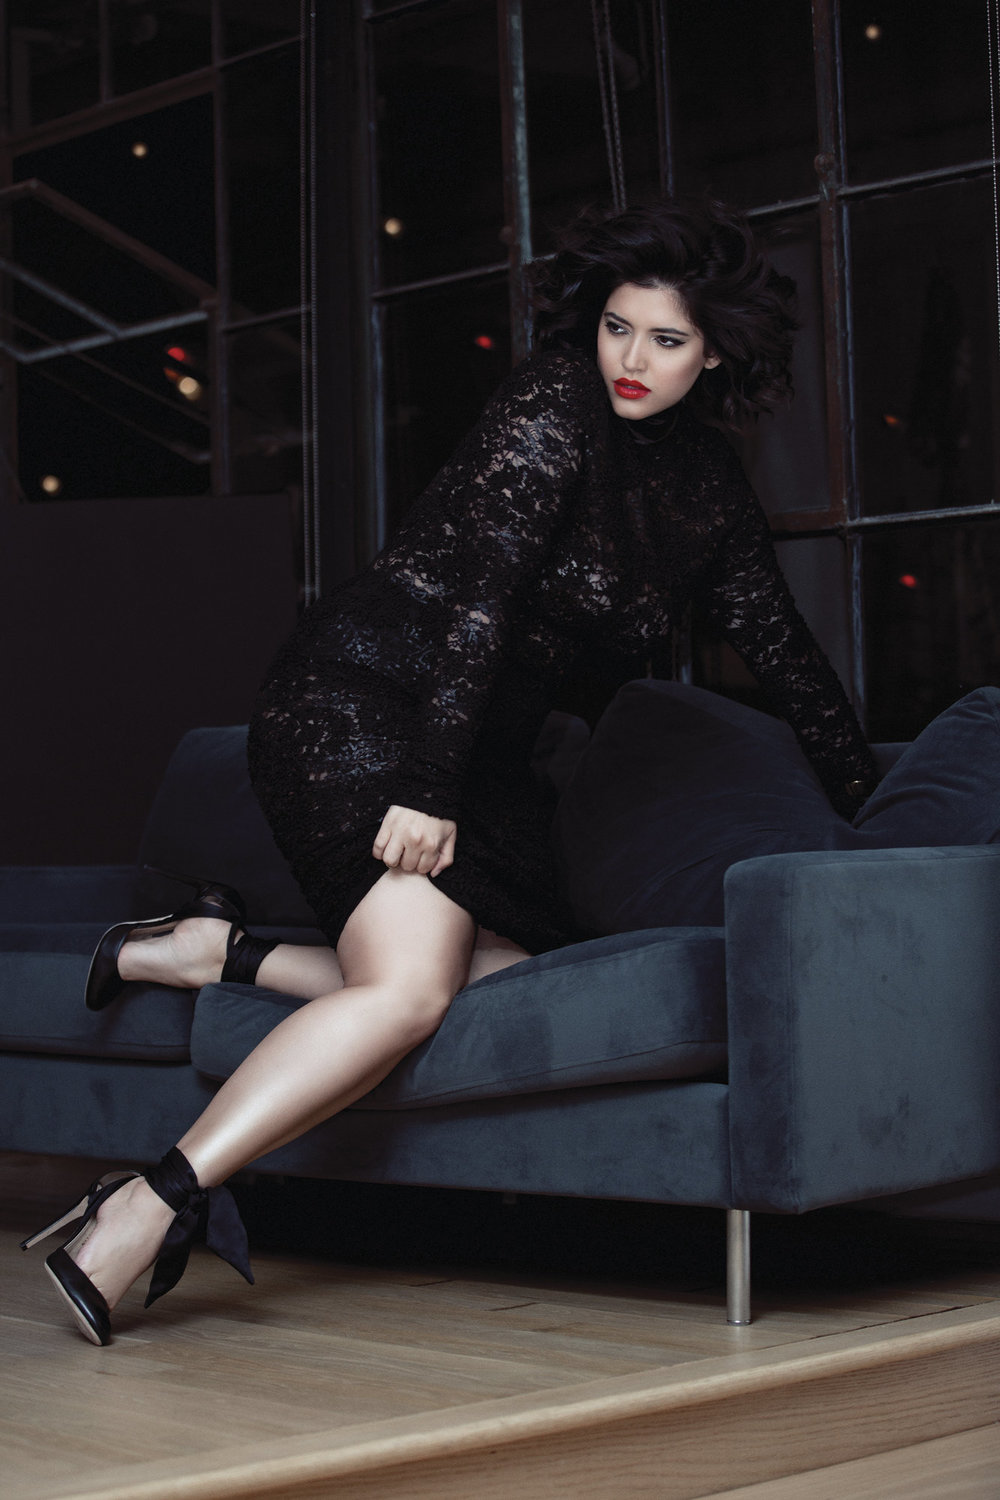 Jon Marc by K Secret: Black Lace Dress  Chloe Gosselin: Black Tie Pumps